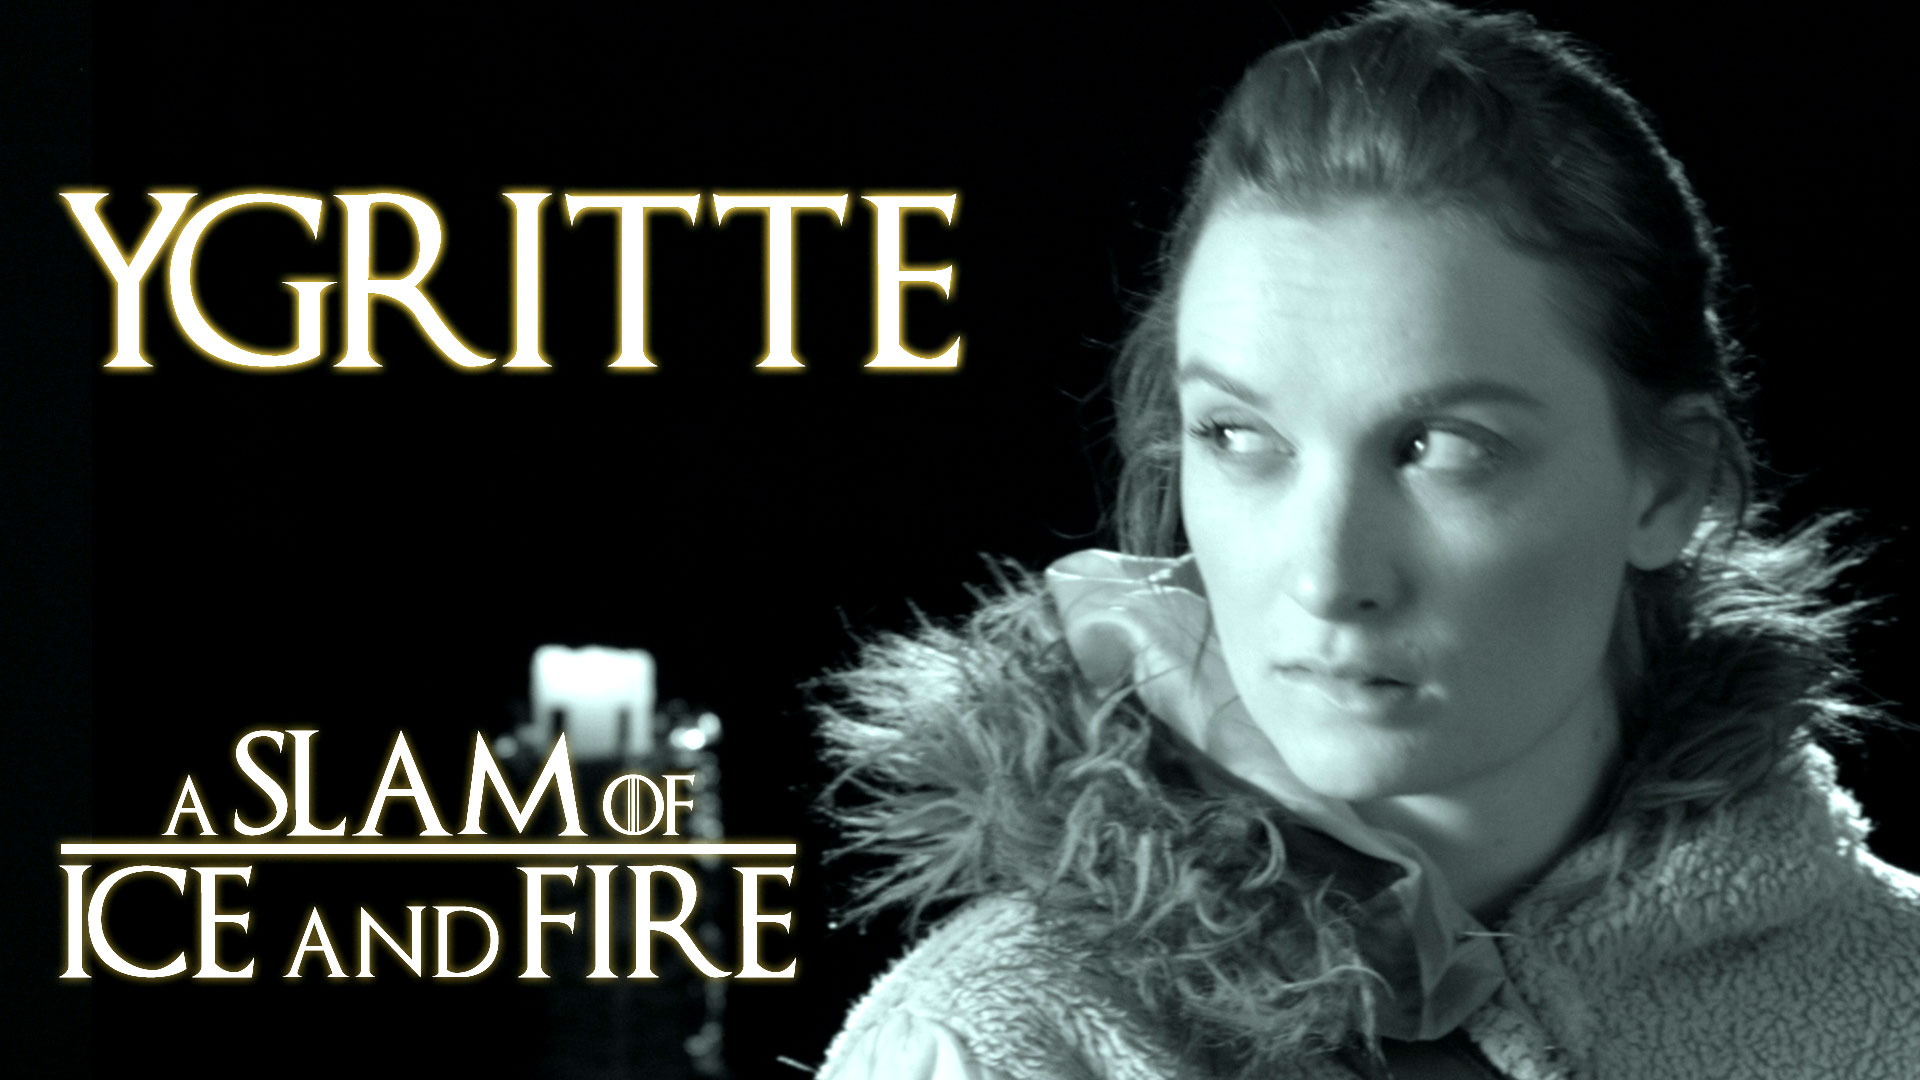 Ygritte - A Slam of Ice and Fire || Spoken Word